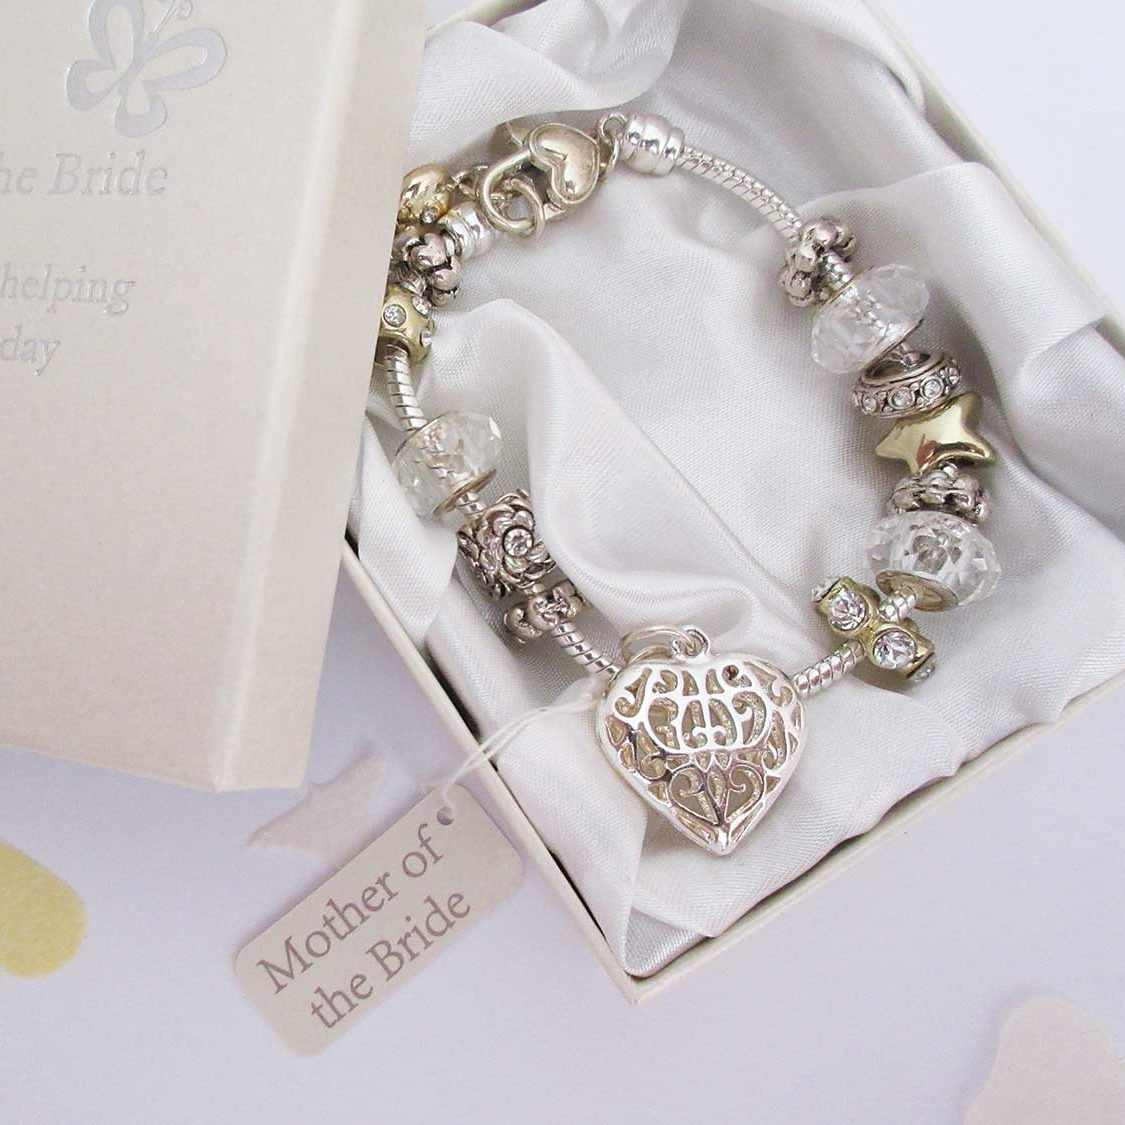 Mother of the Bride bracelet - silver and gold, with charms - Ahoy Designs